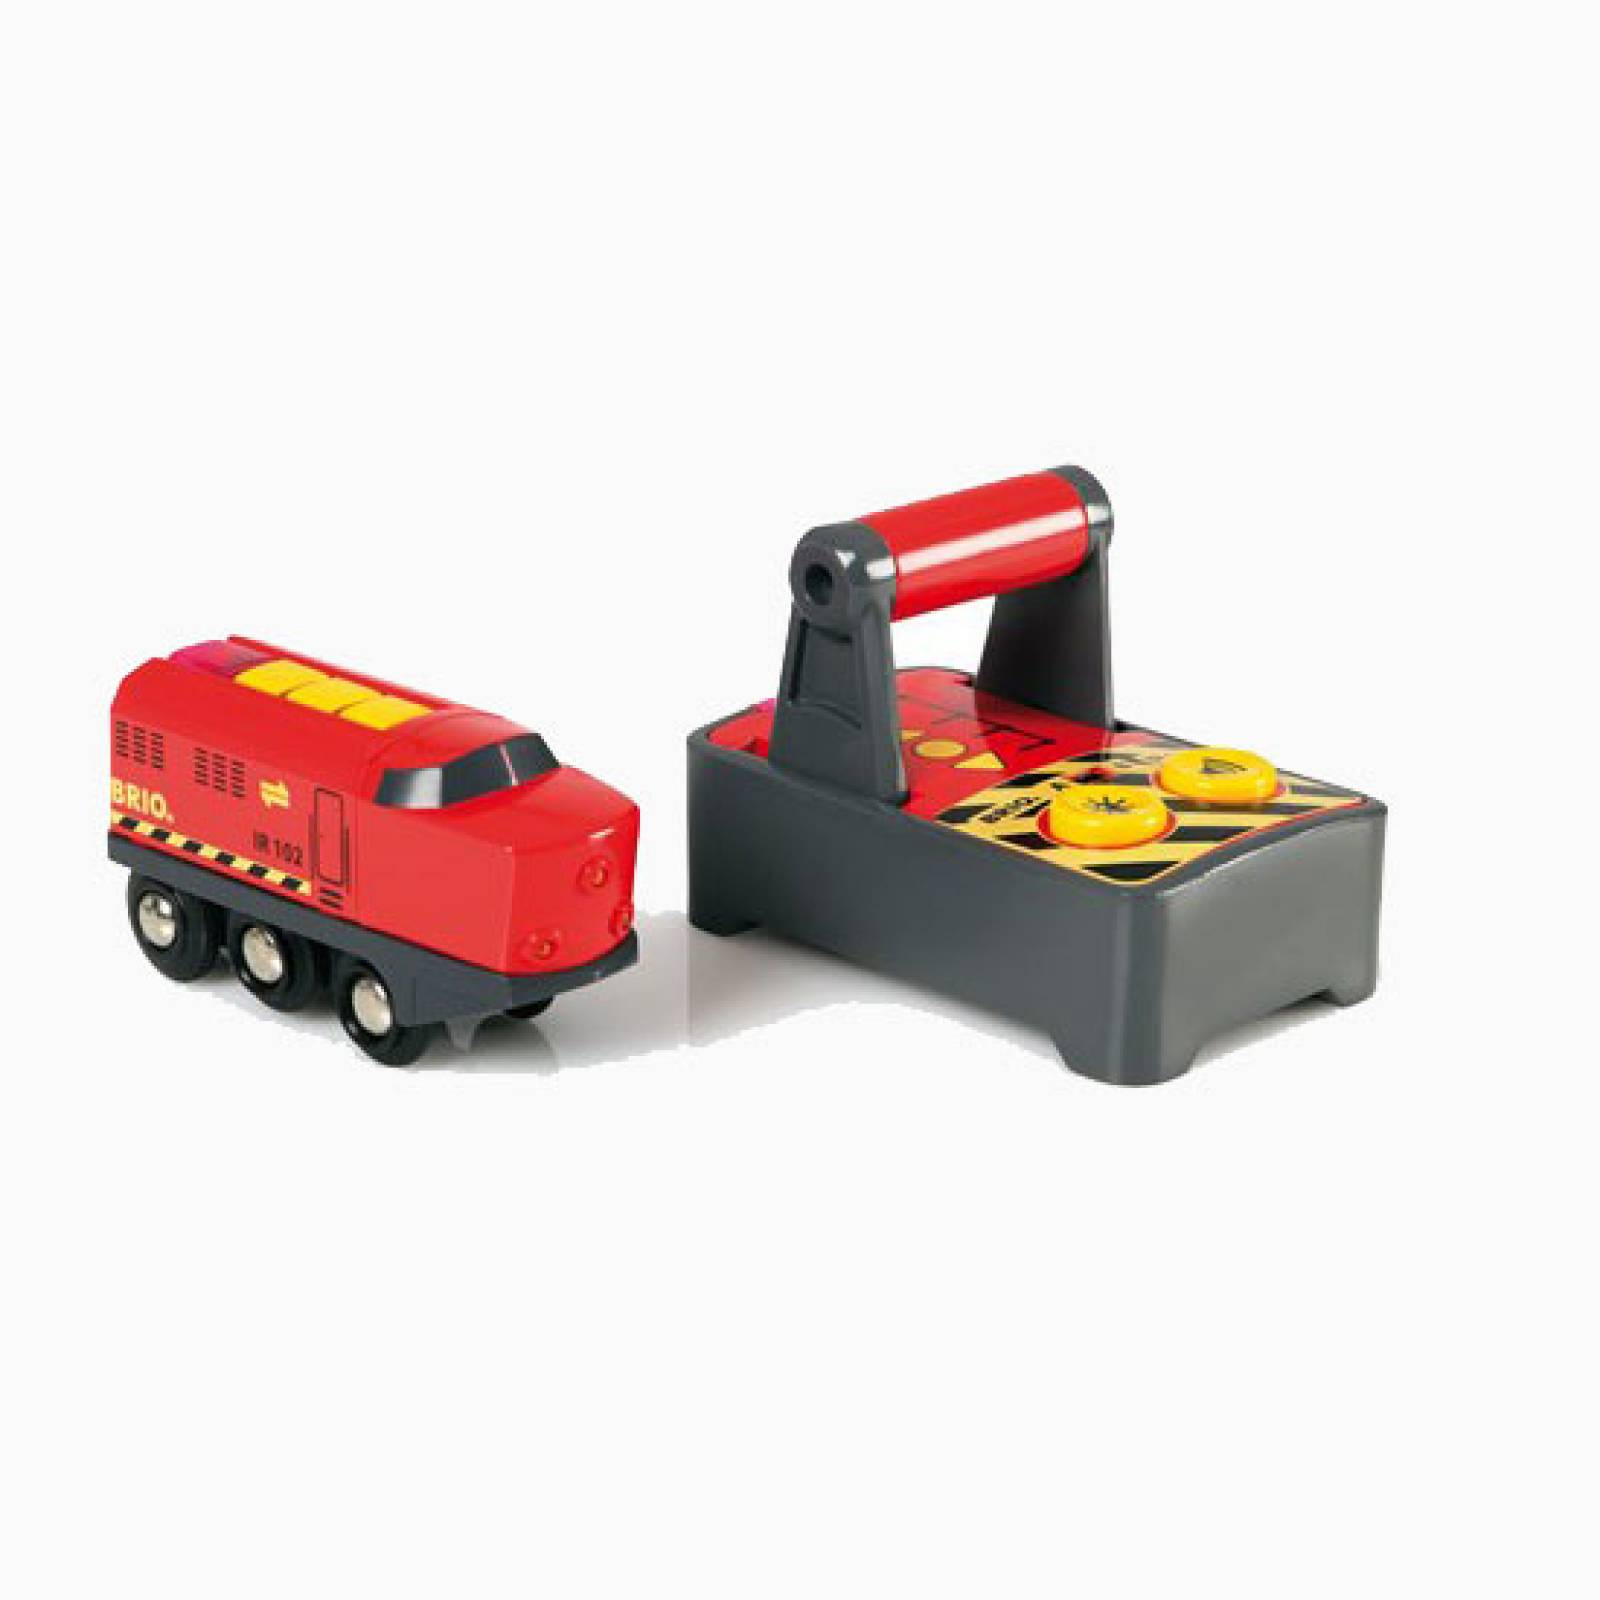 Remote Control Engine BRIO Wooden Railway Age 3+ thumbnails